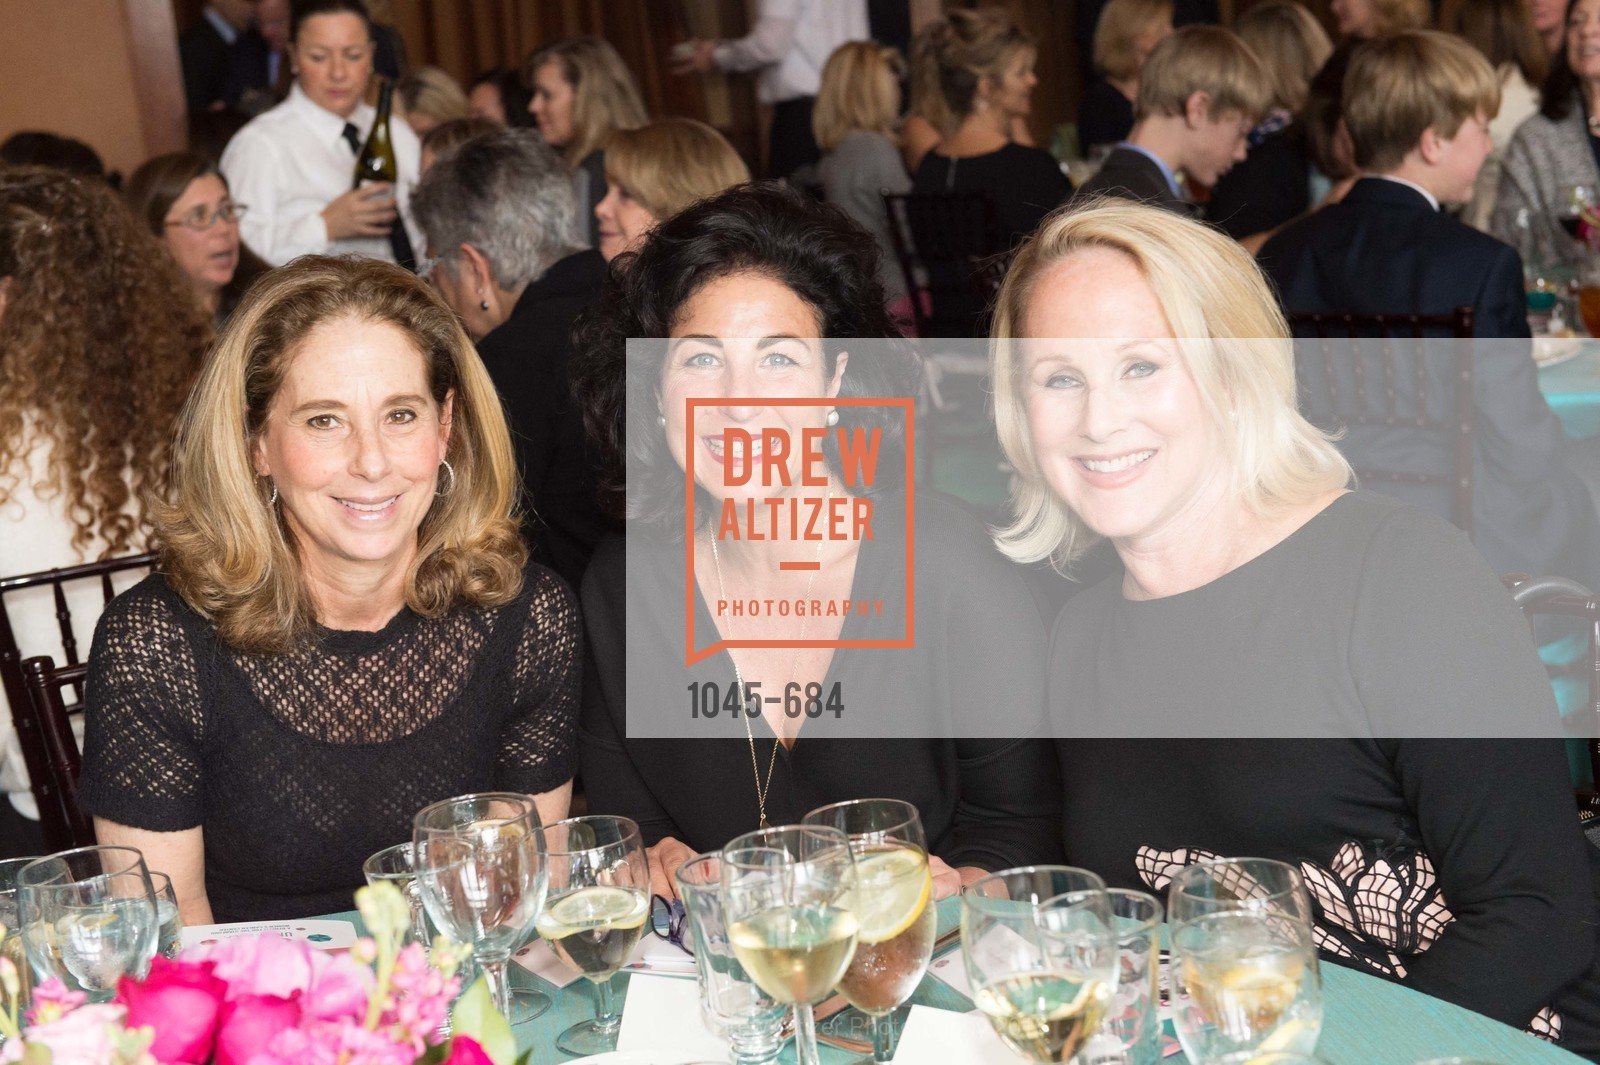 Patsy Lurie, Jennifer Jeffries, Debbie Rosenberg, Under One Umbrella, Sharon Heights Golf and Country Club, January 13th, 2016,Drew Altizer, Drew Altizer Photography, full-service agency, private events, San Francisco photographer, photographer california